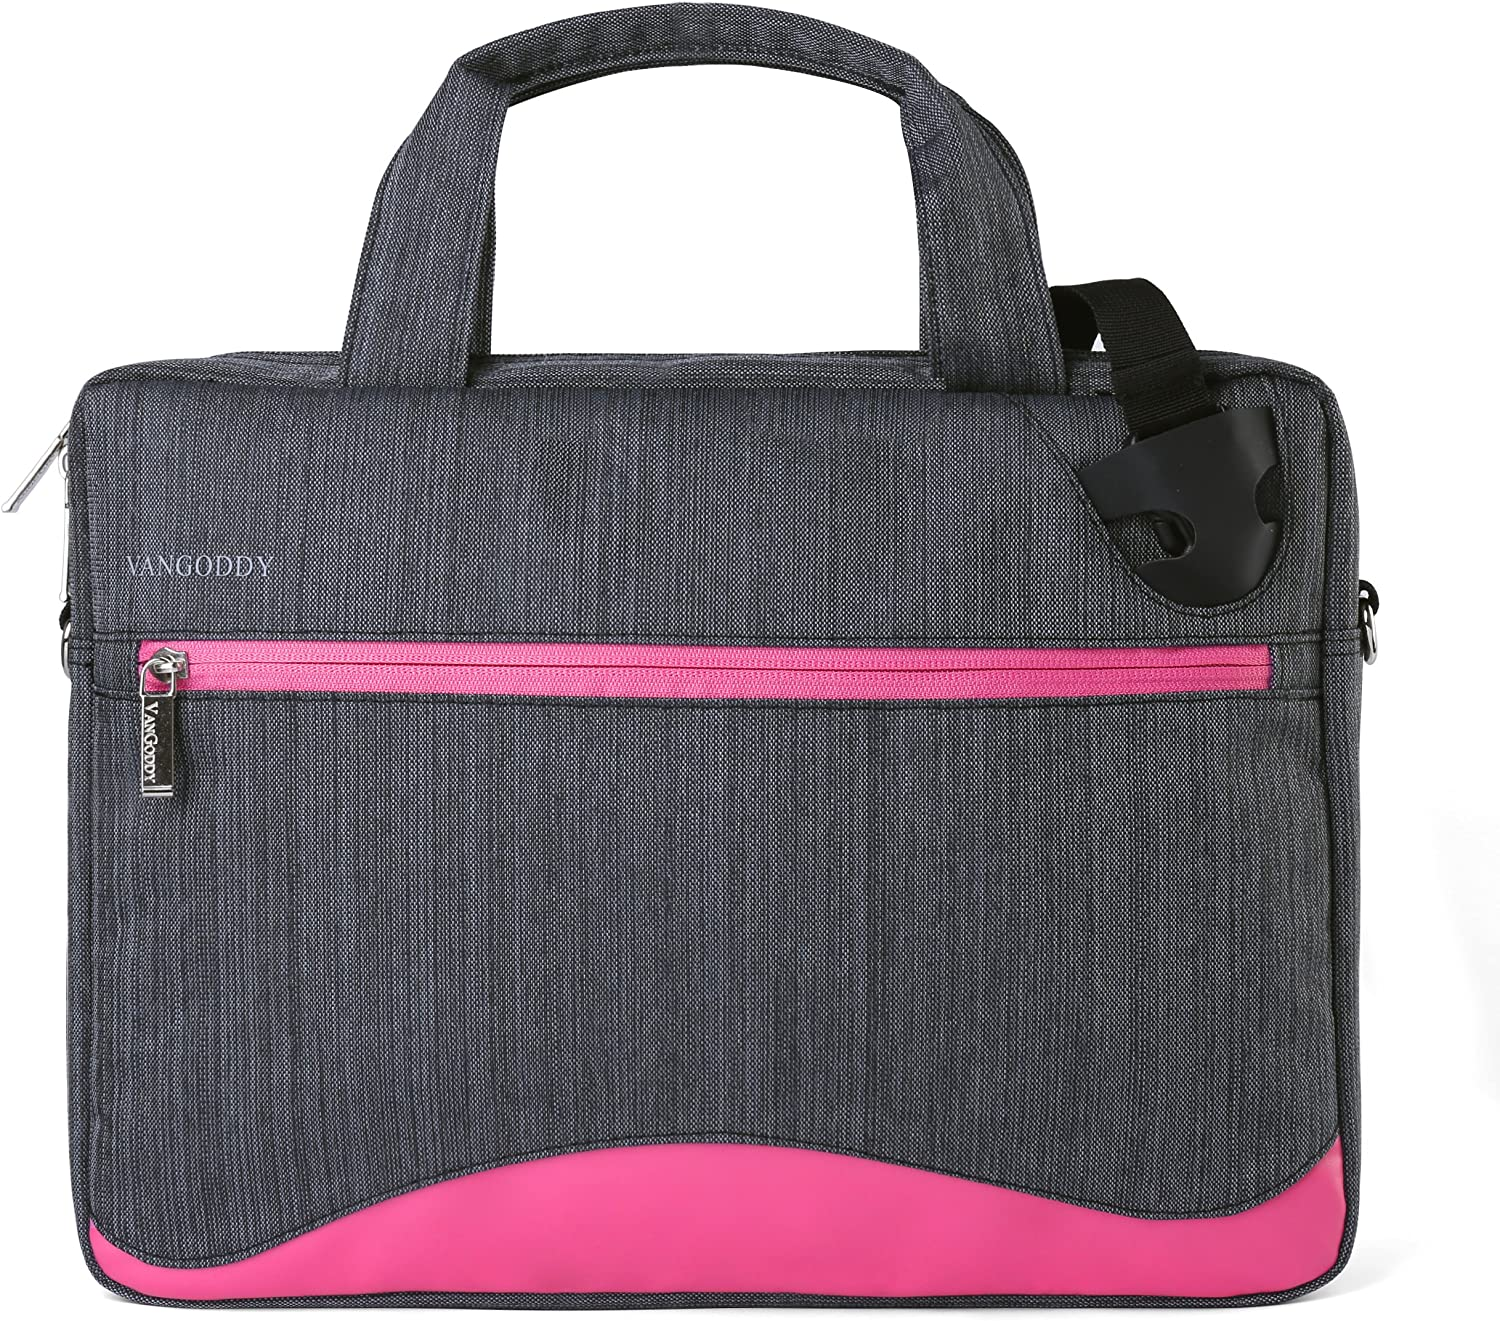 Slim Pink Anti-Theft Laptop Messenger Bag 14 15.6 inch for Dell Latitude, Inspiron, Precision, XPS, Vostro, G3 G5 G7